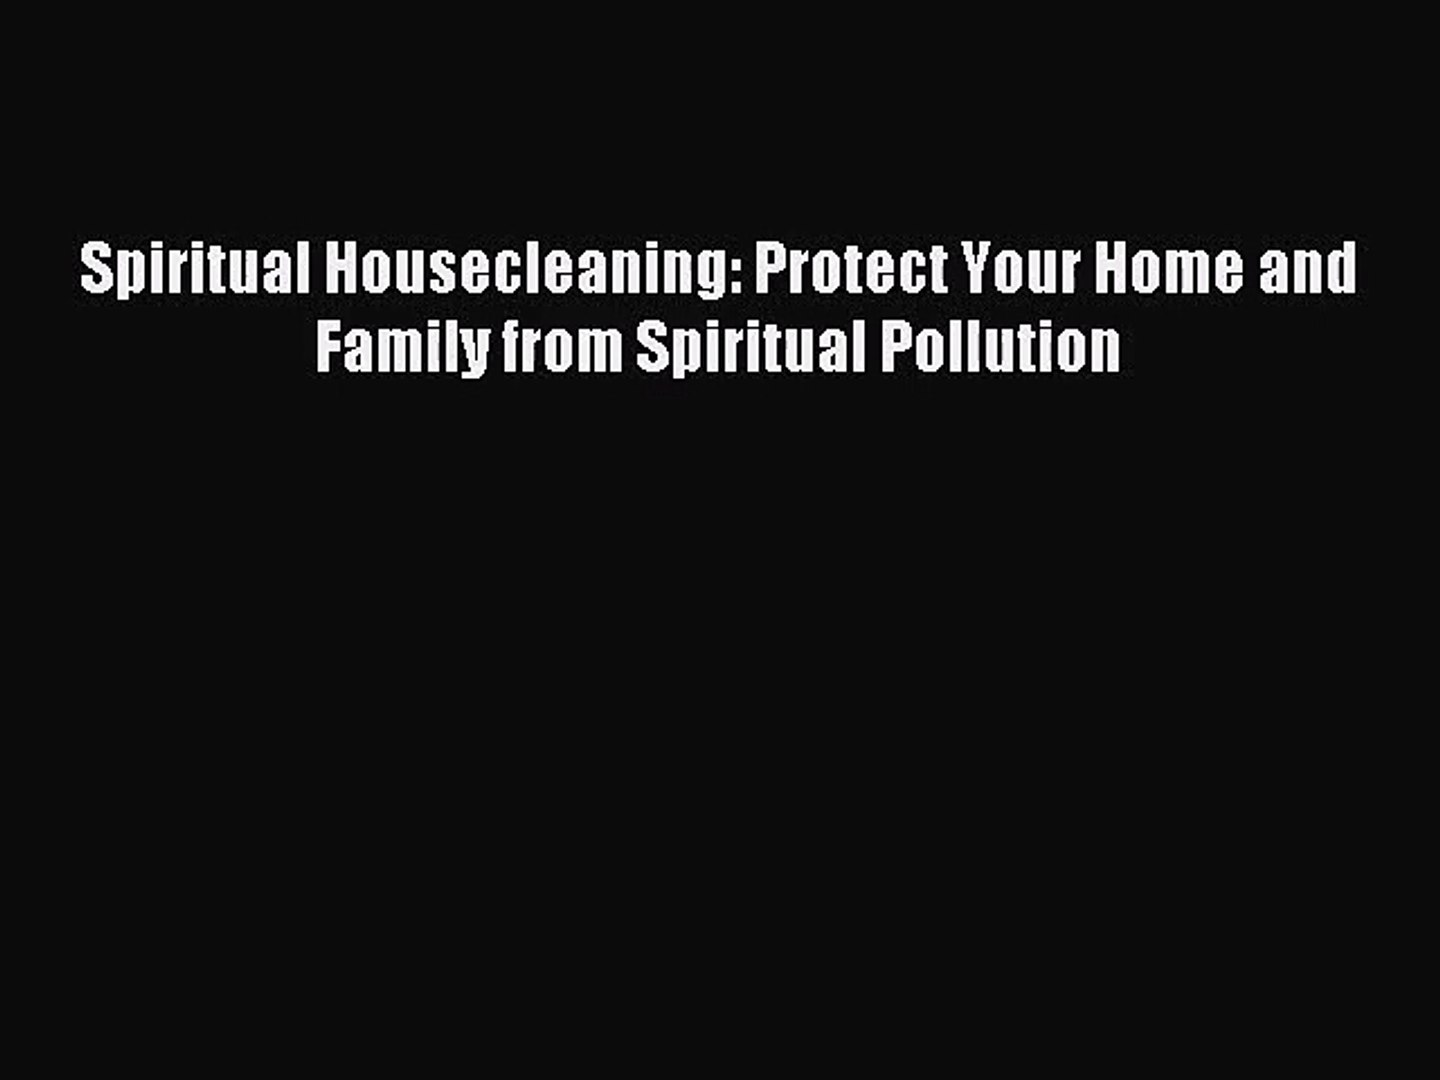 Spiritual Housecleaning: Protect Your Home and Family from Spiritual Pollution [PDF] Full Ebook